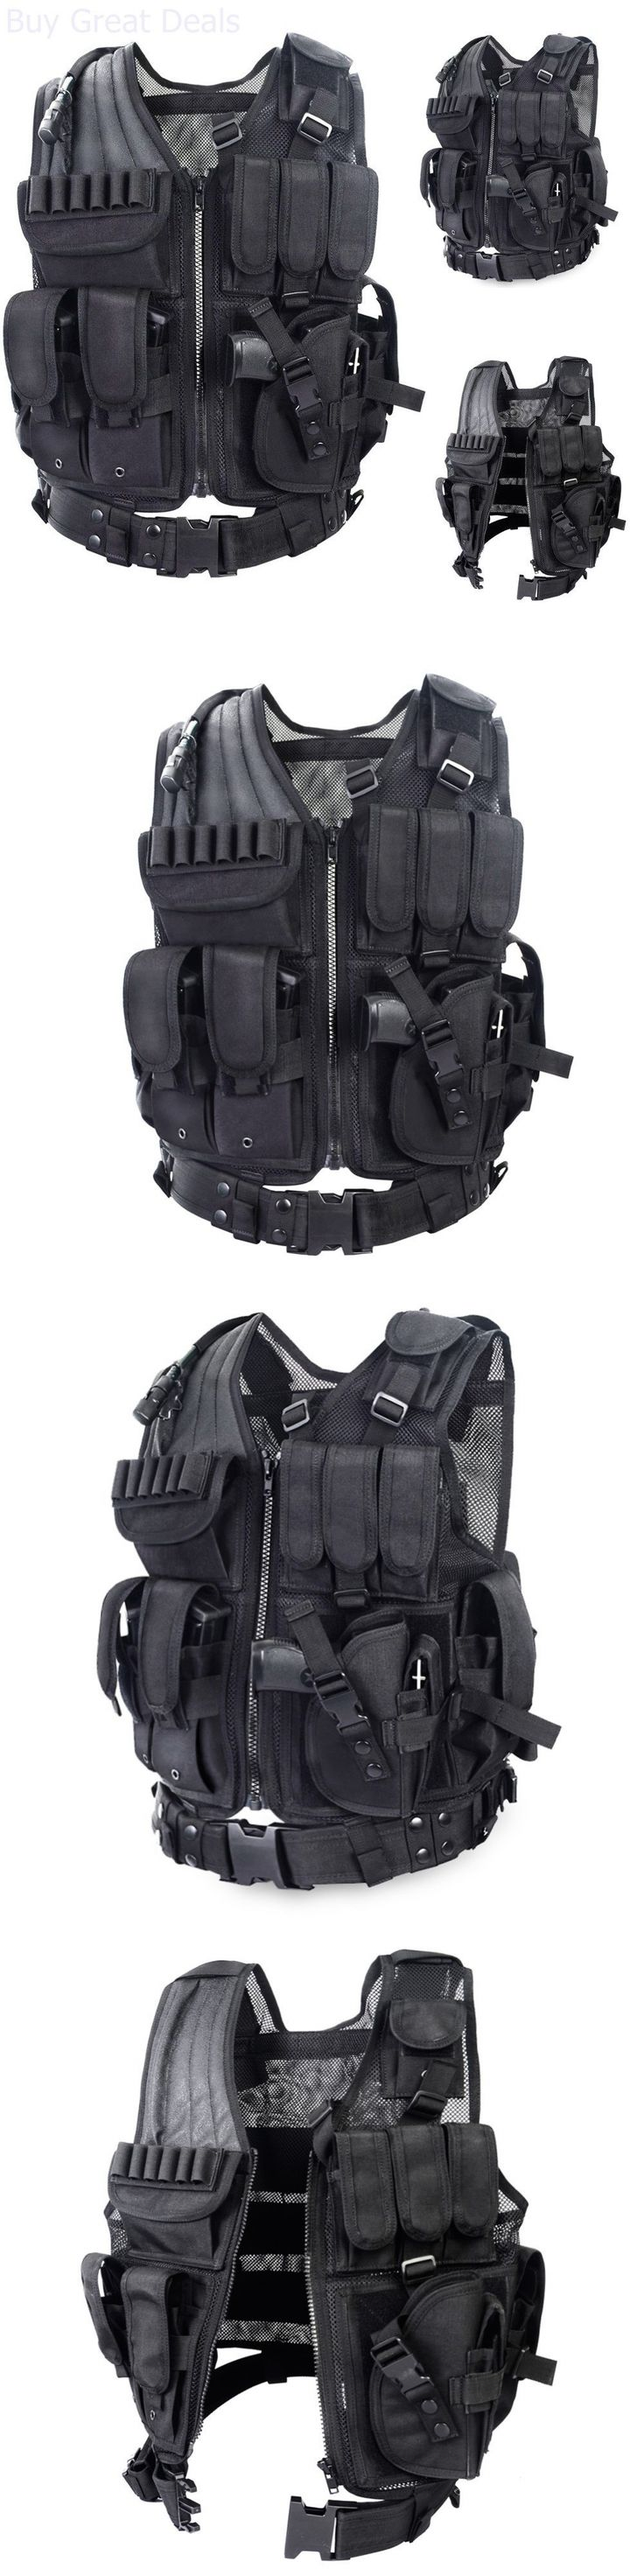 Vests 36284: Yakeda Tactical Swat Police Military Hunting Survival Scenario Vest Body Armor BUY IT NOW ONLY: $54.2